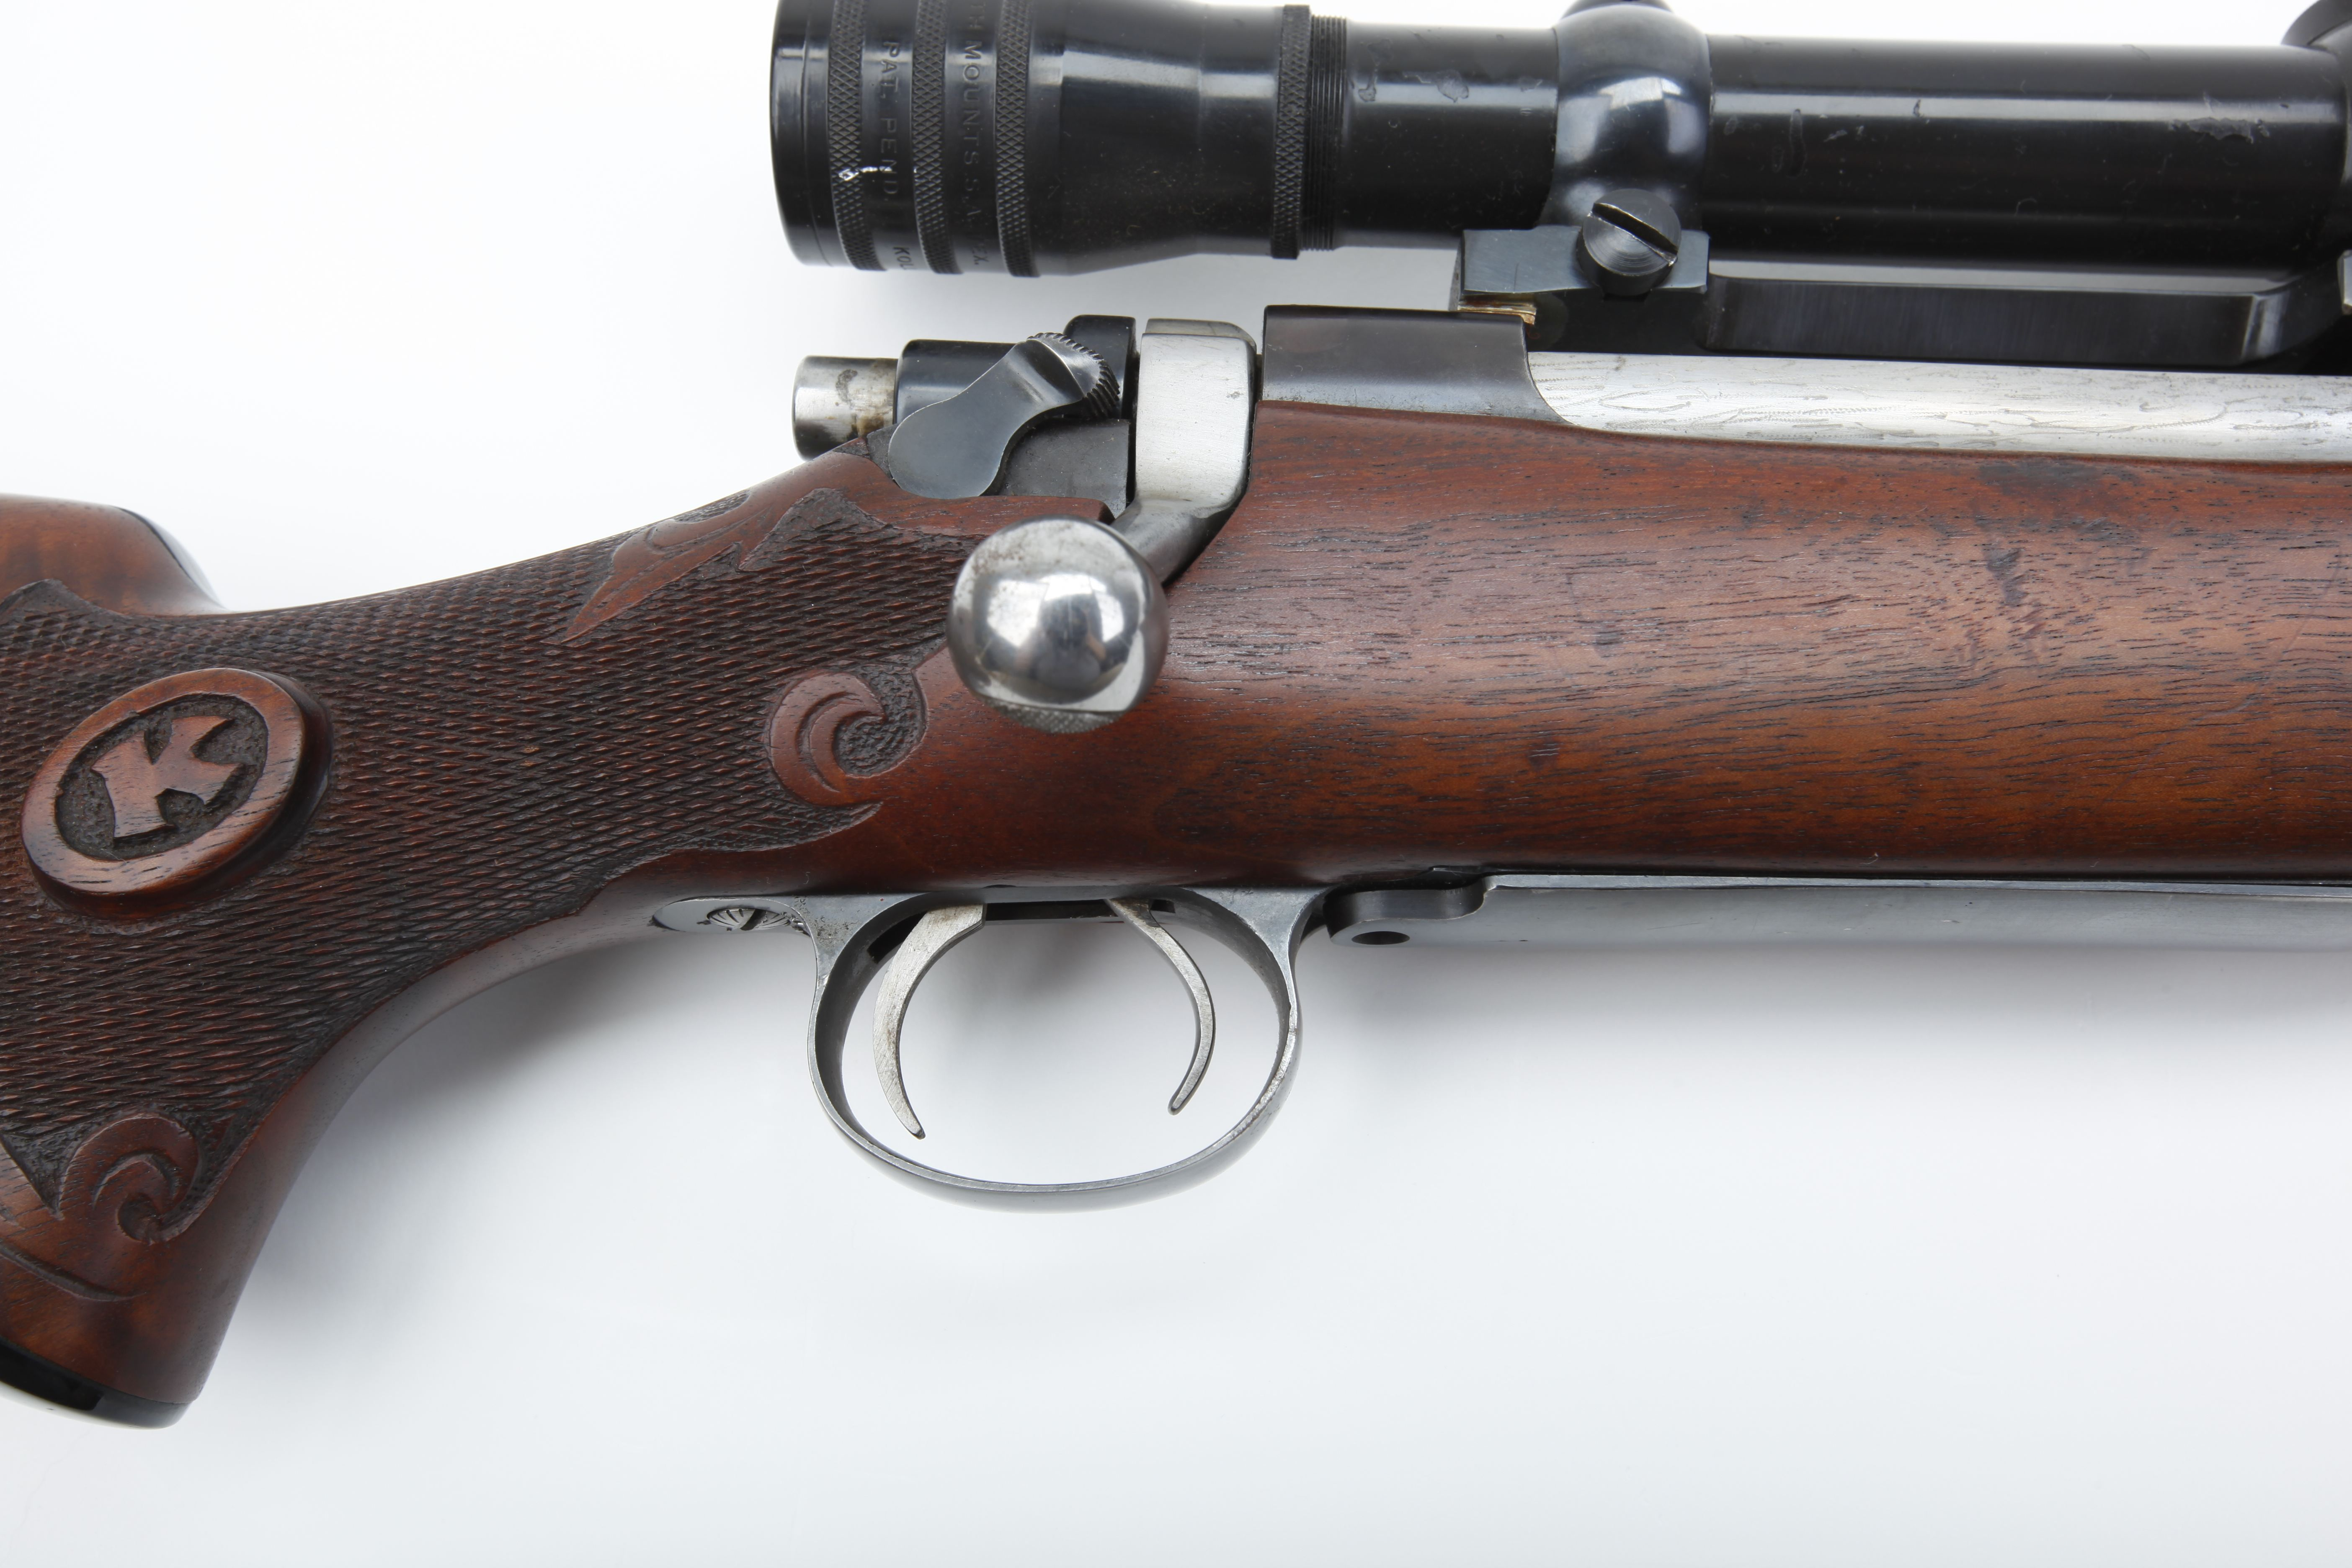 Mauser Action Falcon Test Rifle - .334 cal.